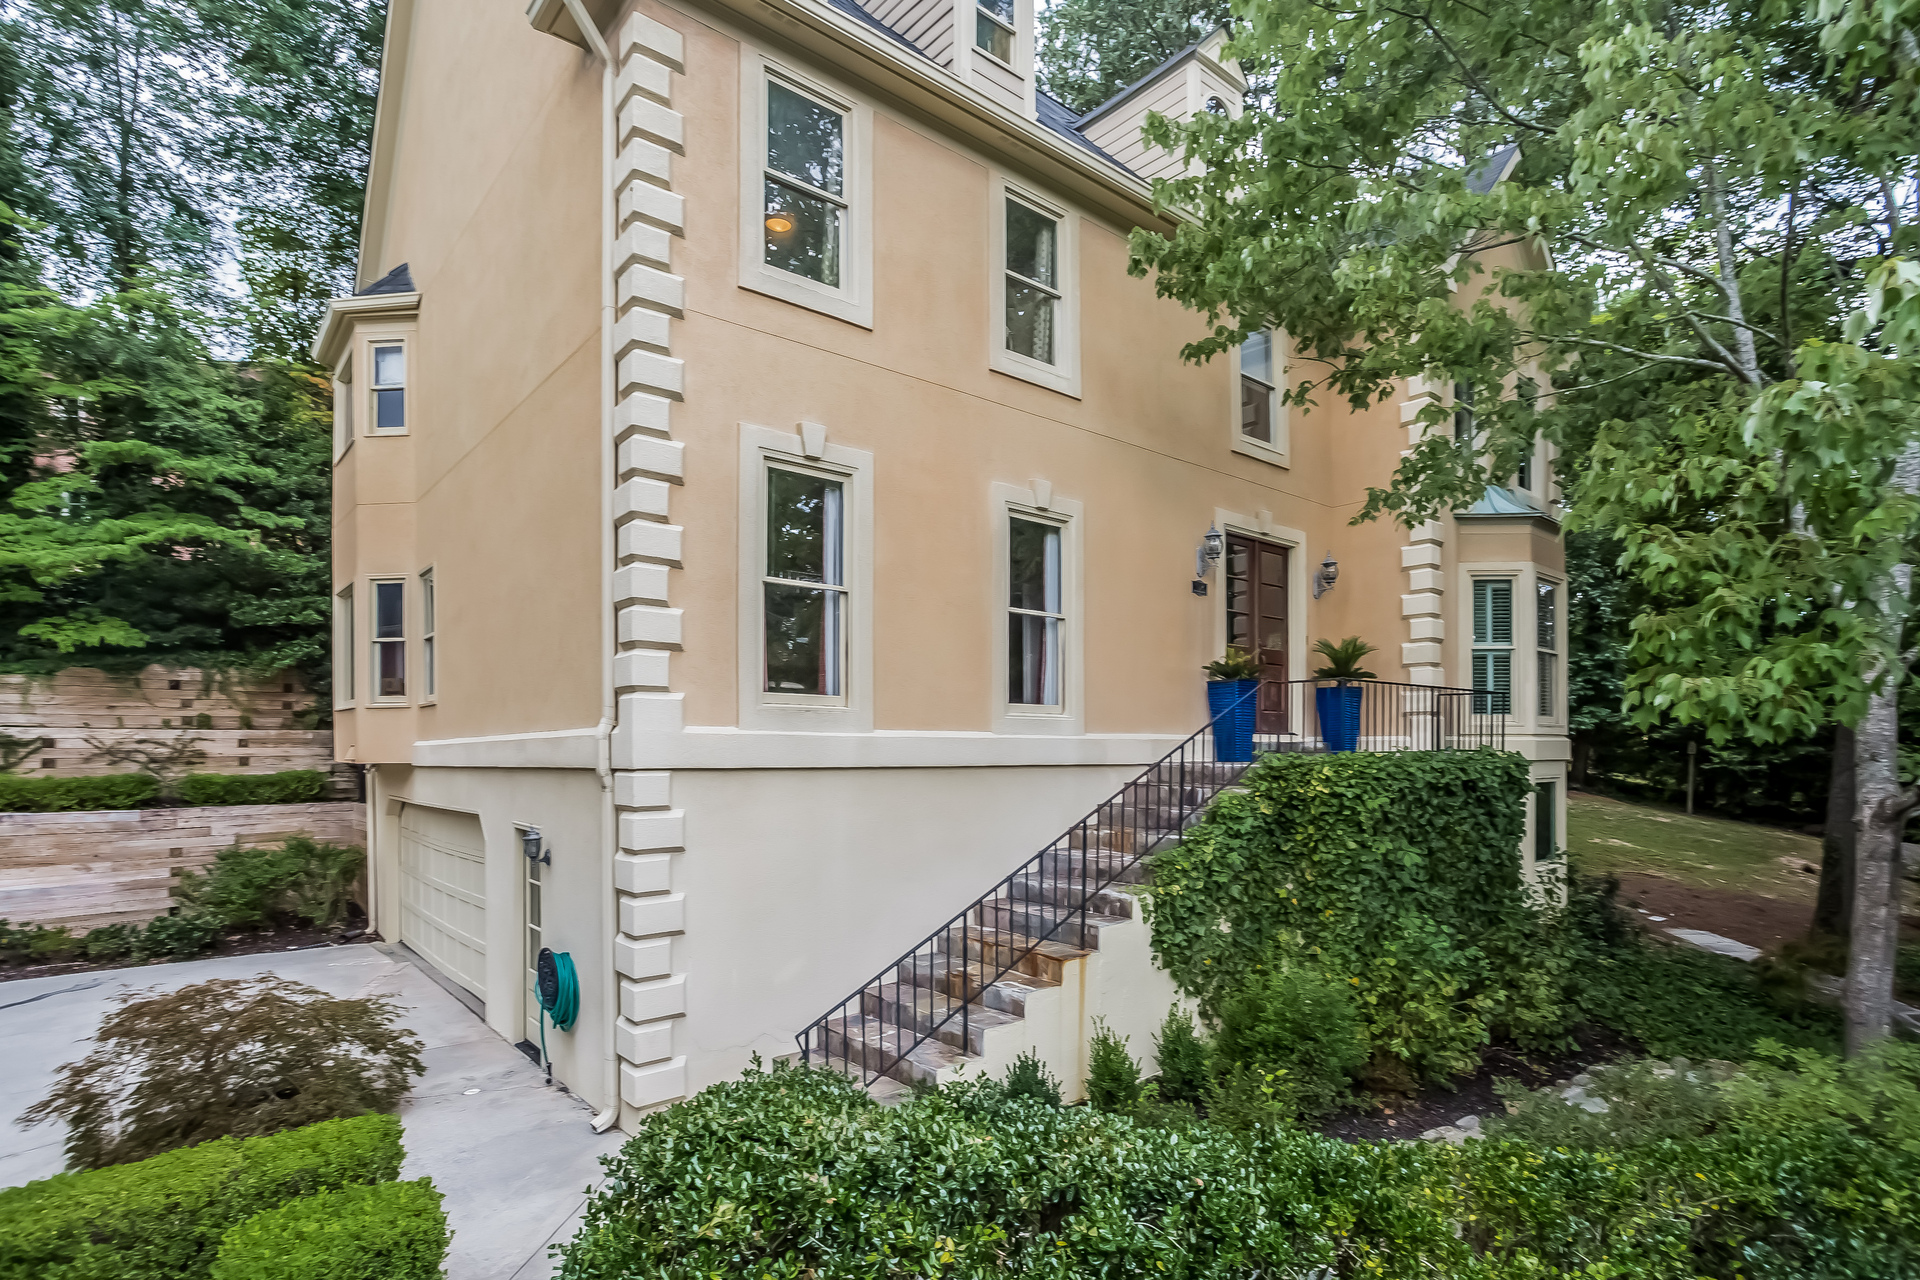 open-houses property at Exceptional Morningside Value With Three Finished Levels